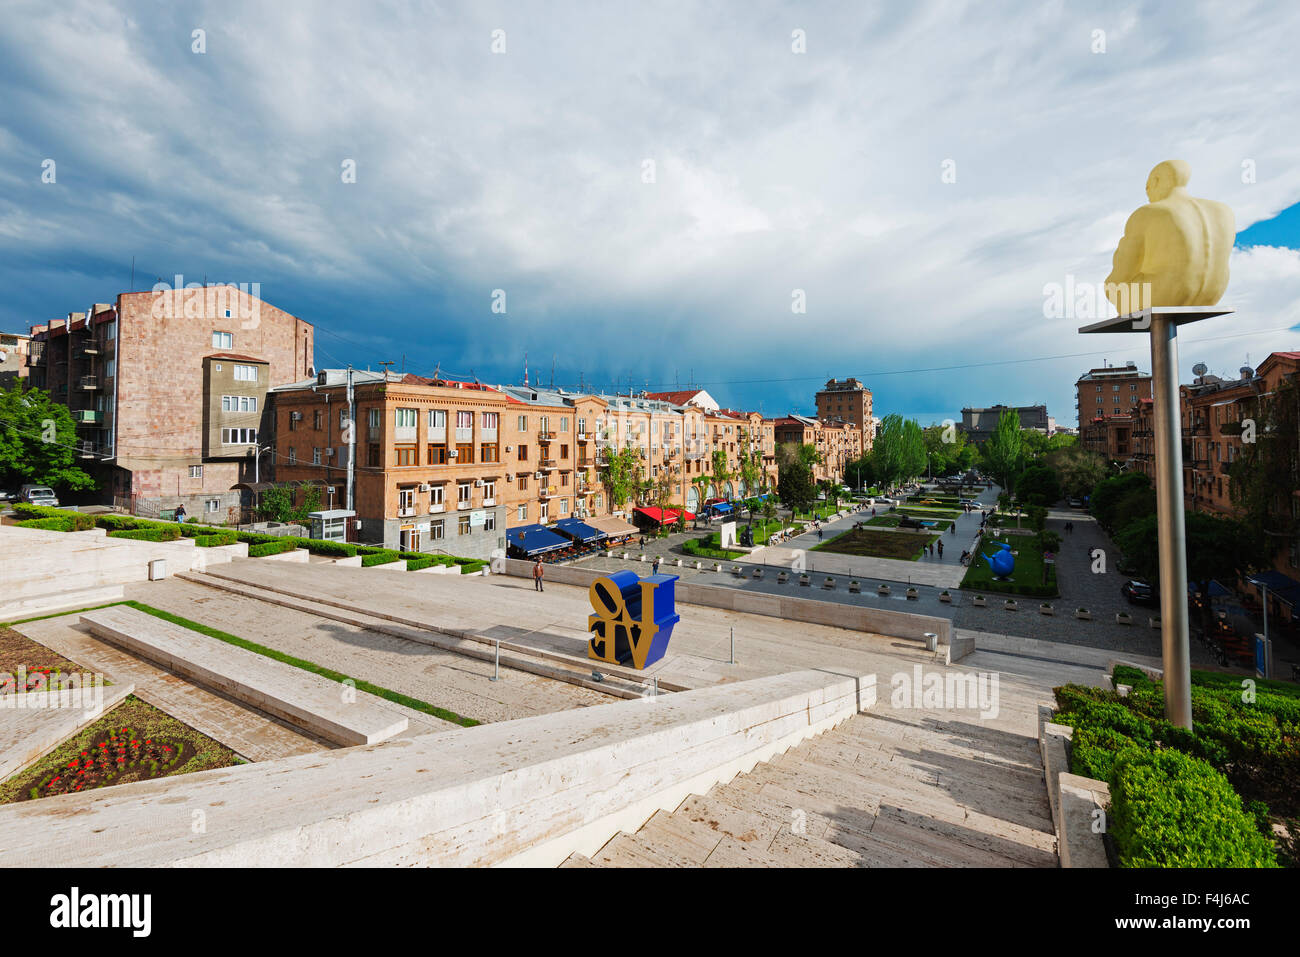 Art exhibitions at the Cascade, Yerevan, Armenia, Caucasus region, Central Asia, Asia - Stock Image